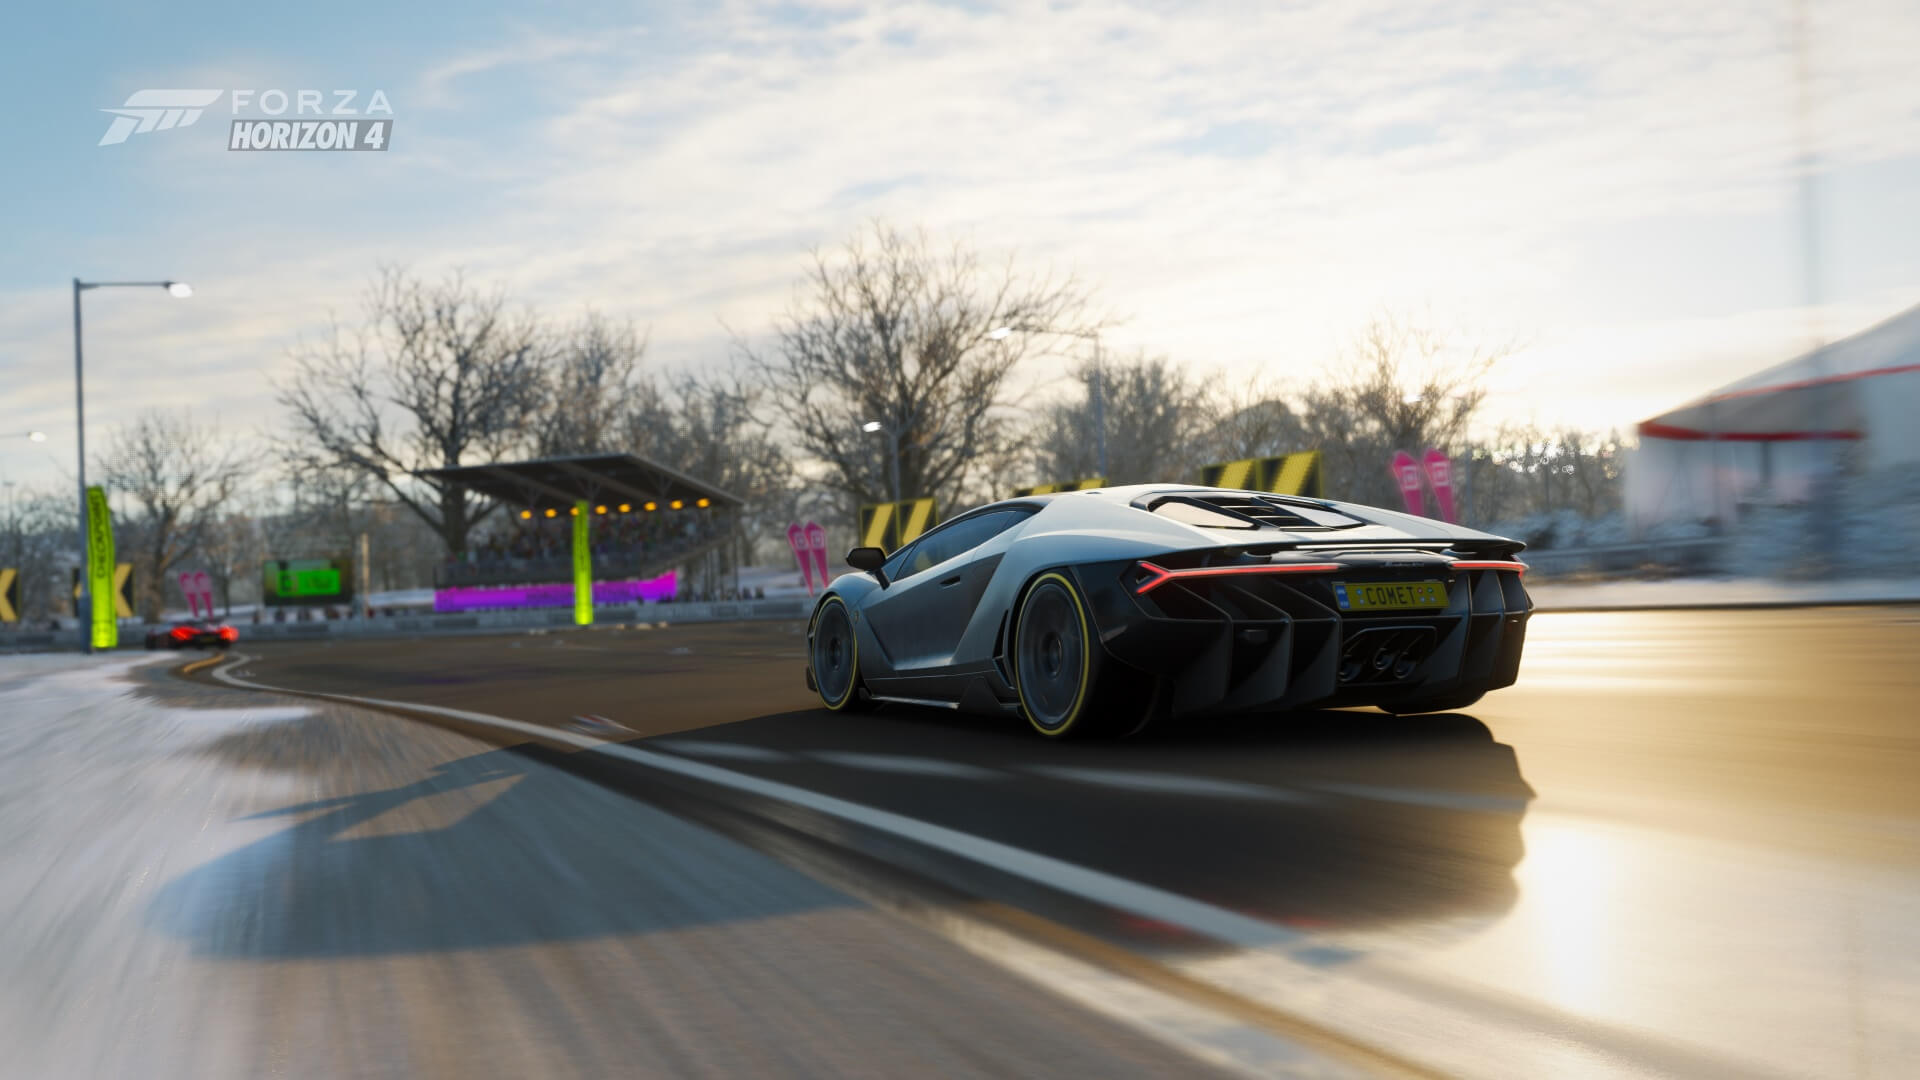 Forza Horizon 4 Update Increases Save Limits Fullthrottle Media